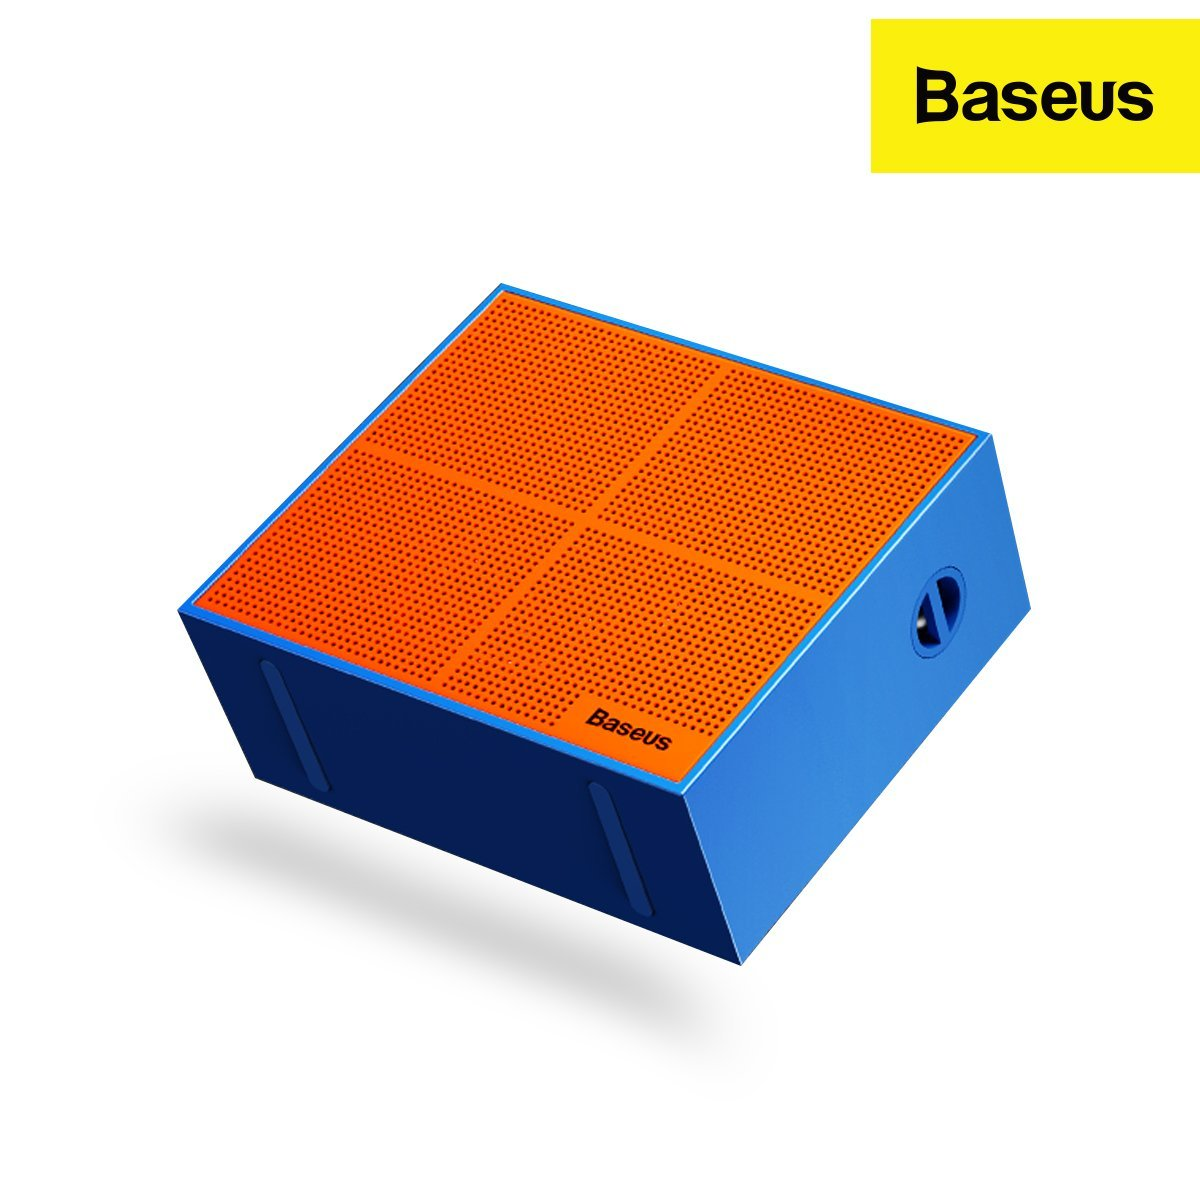 Baseus Encok E05 5W Music-Cube Wireless Speaker with 1500 mAh Battery & 15 hour Playtime Blue- Baseus Official